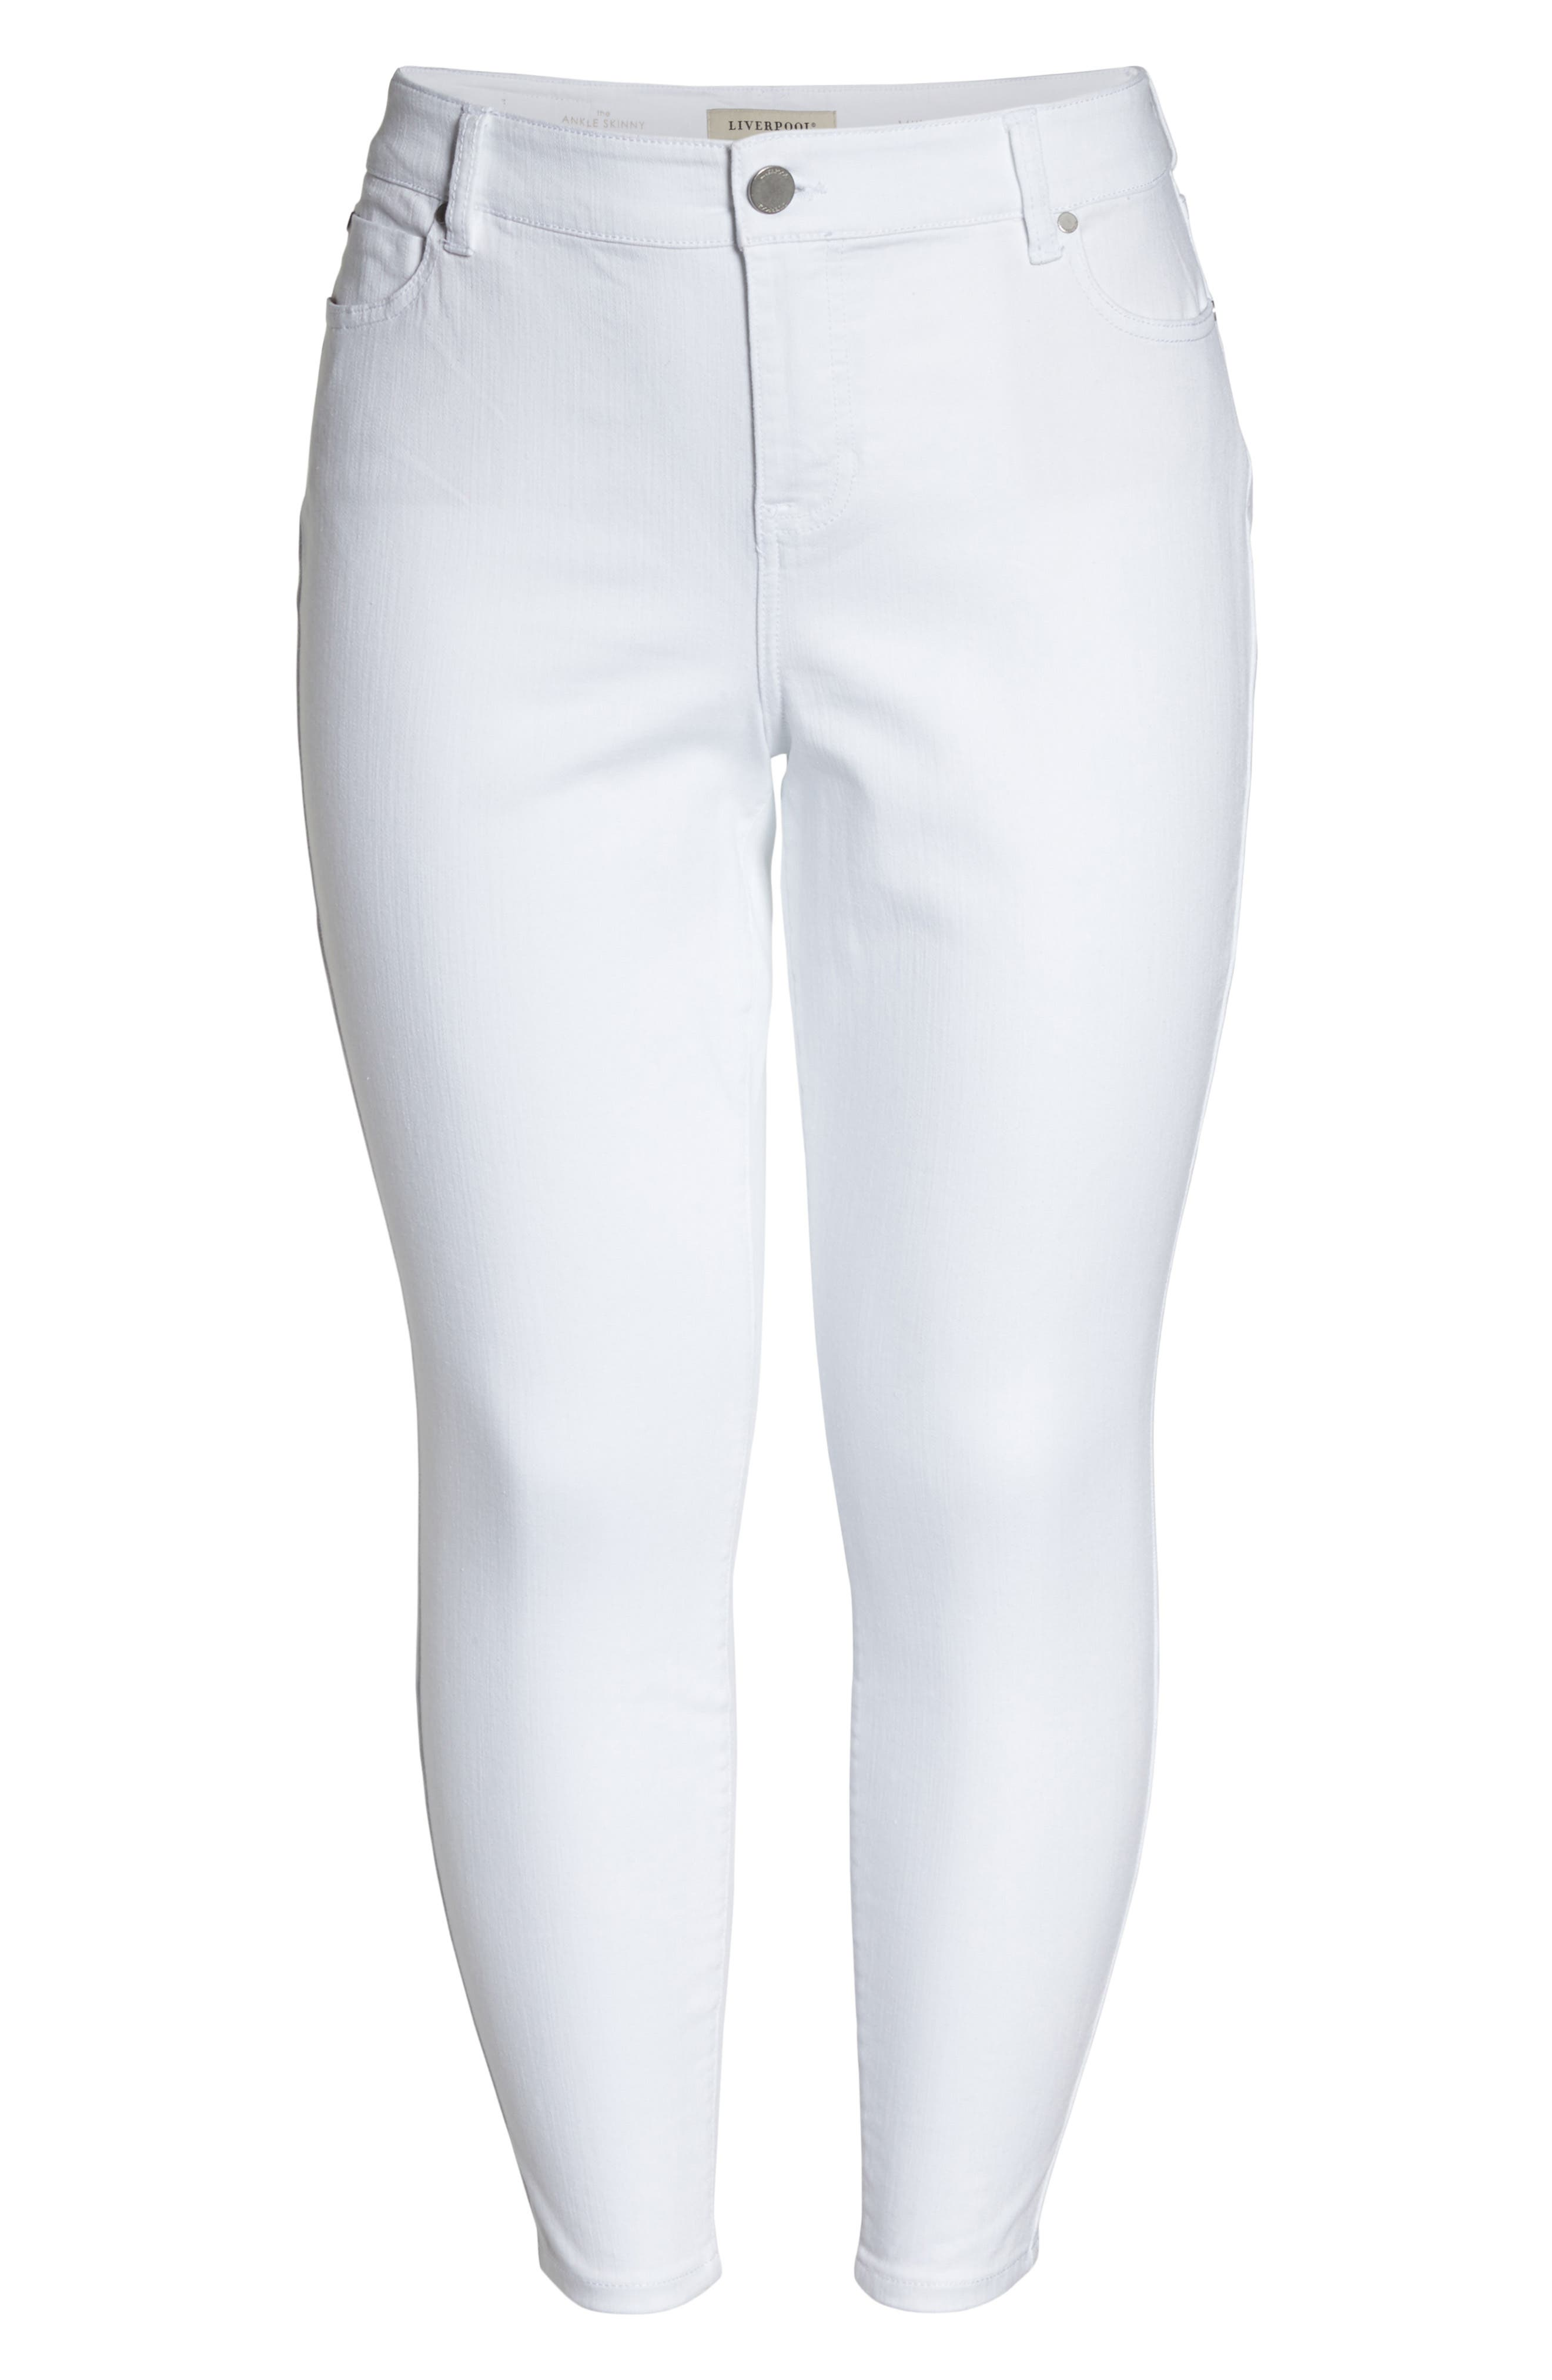 Penny Ankle Skinny Jeans,                             Alternate thumbnail 7, color,                             Bright White